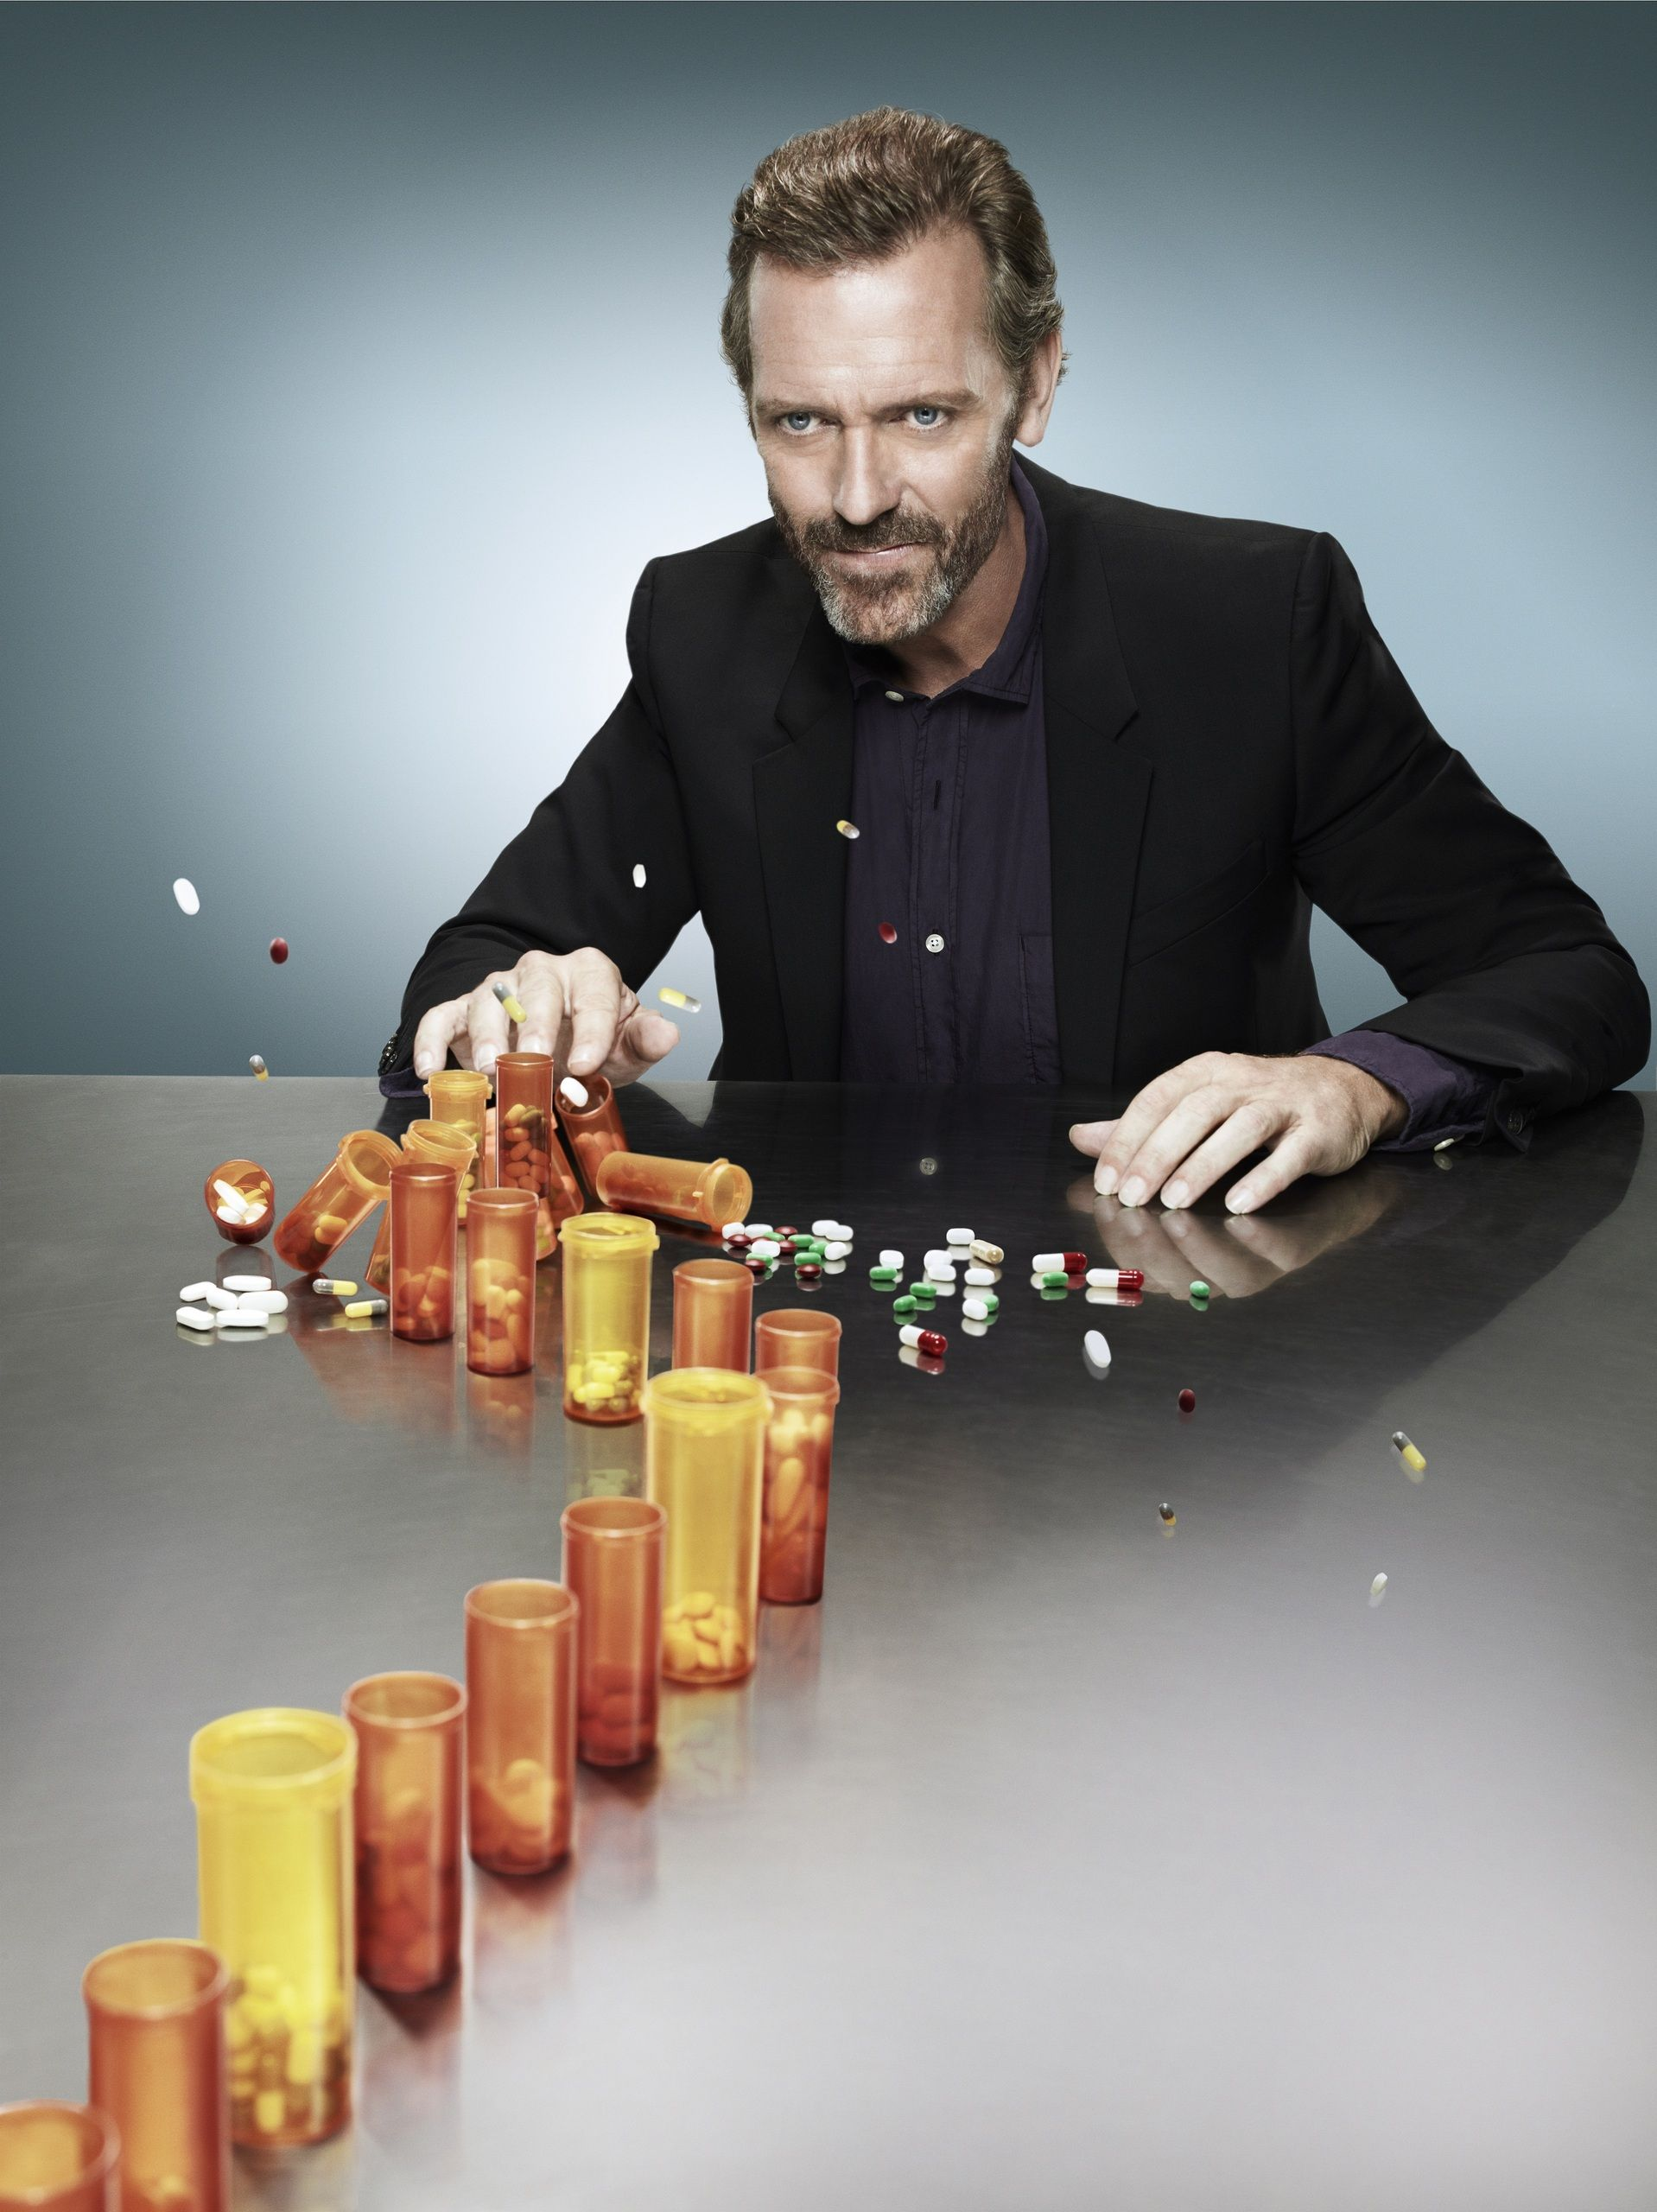 House MD' Season 8 Promotional Photoshoot ~ Dr Gregory House